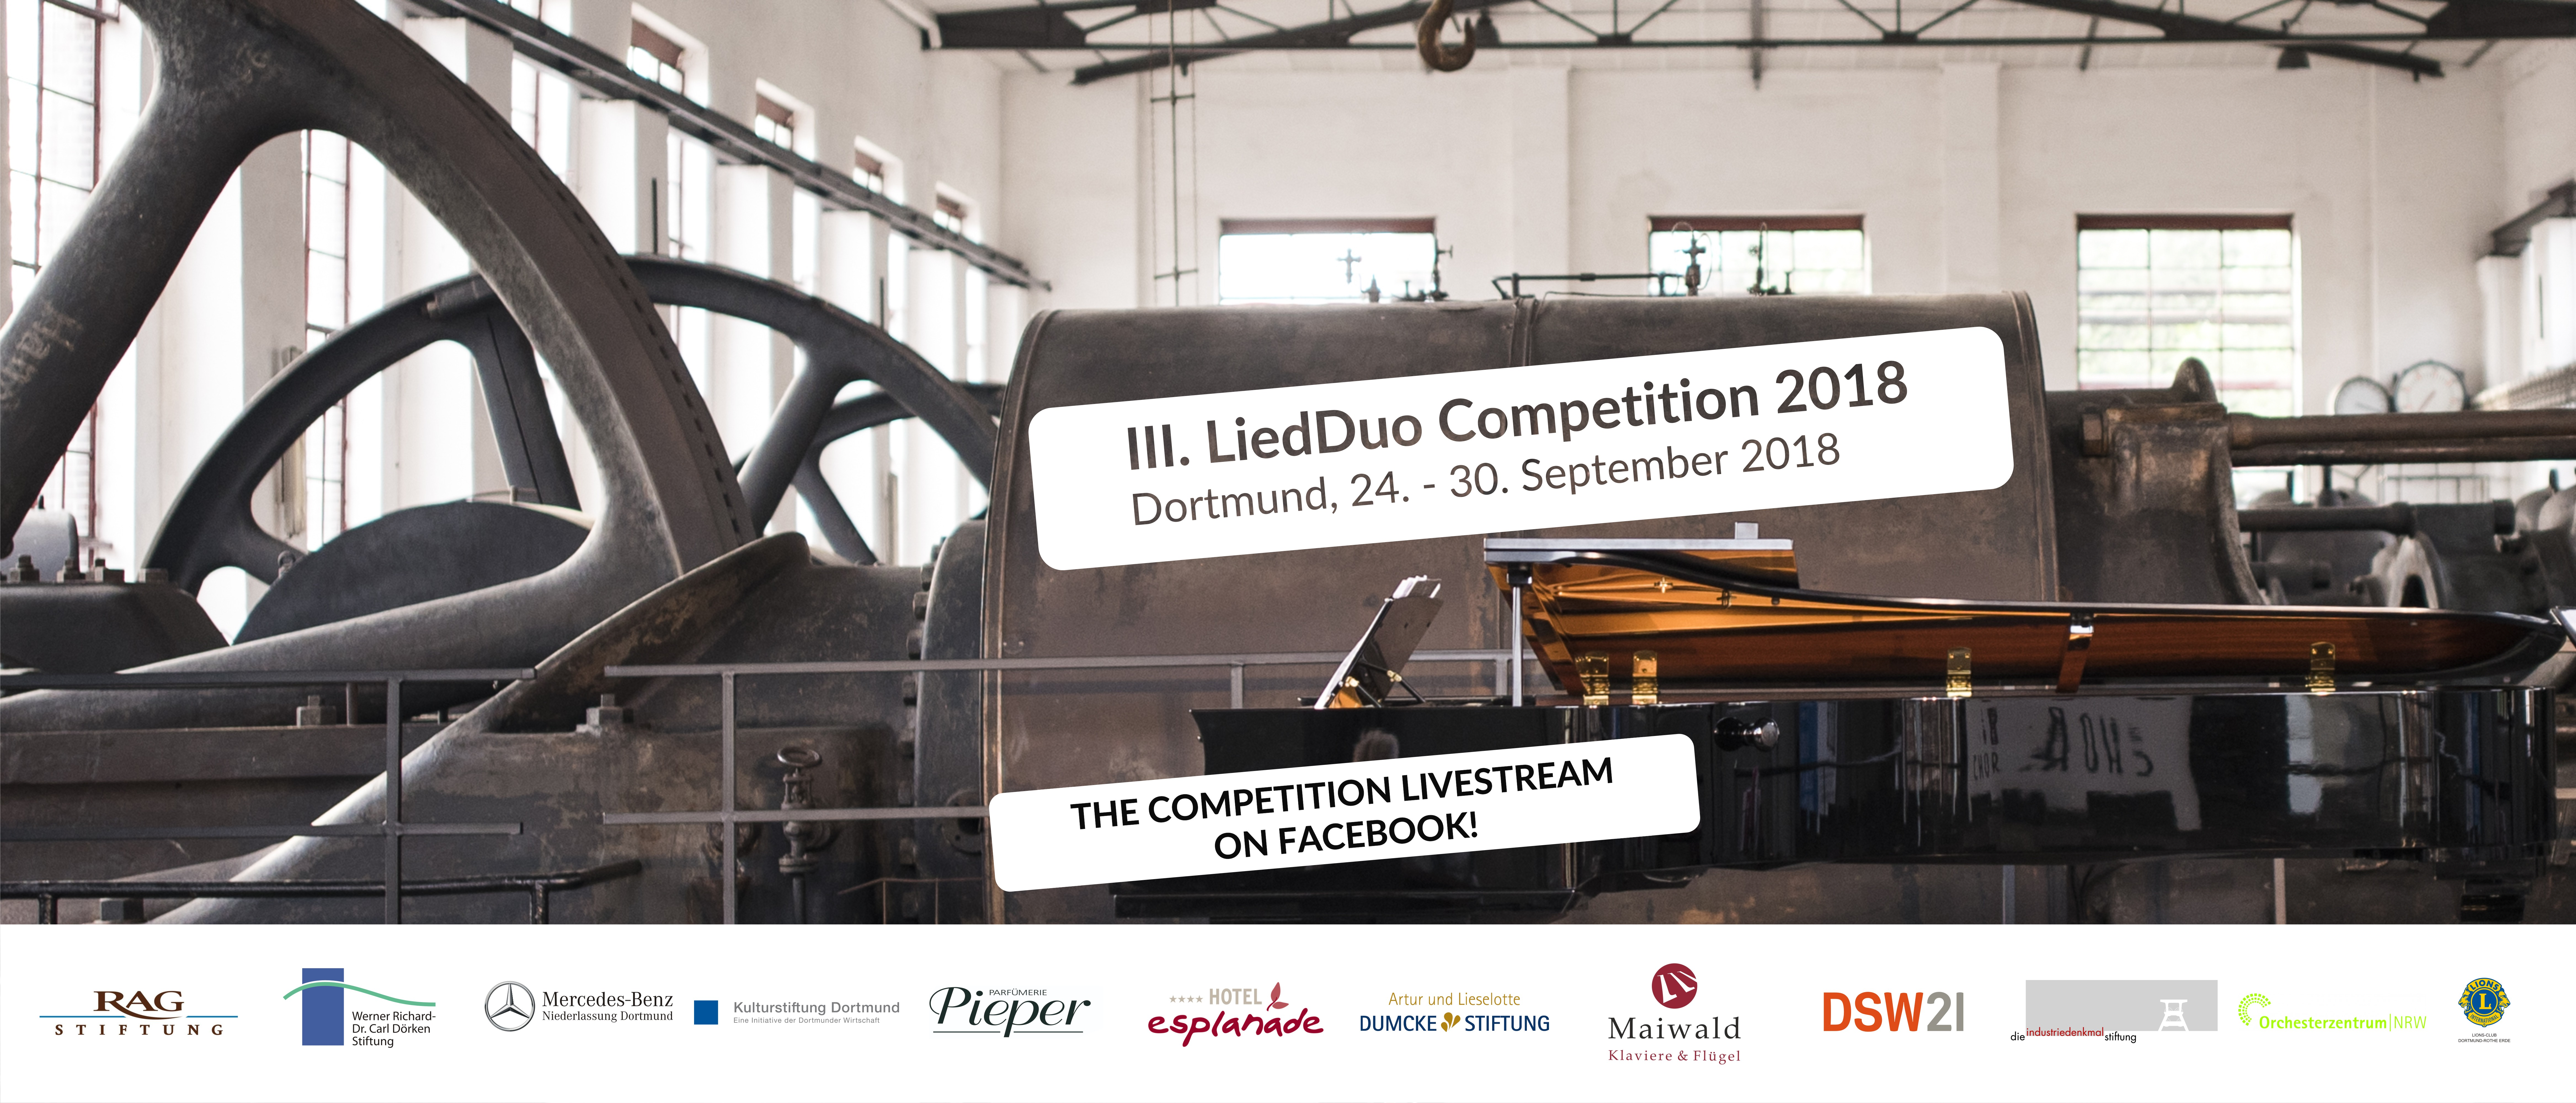 Permalink to:III. LiedDuo Competition 2018